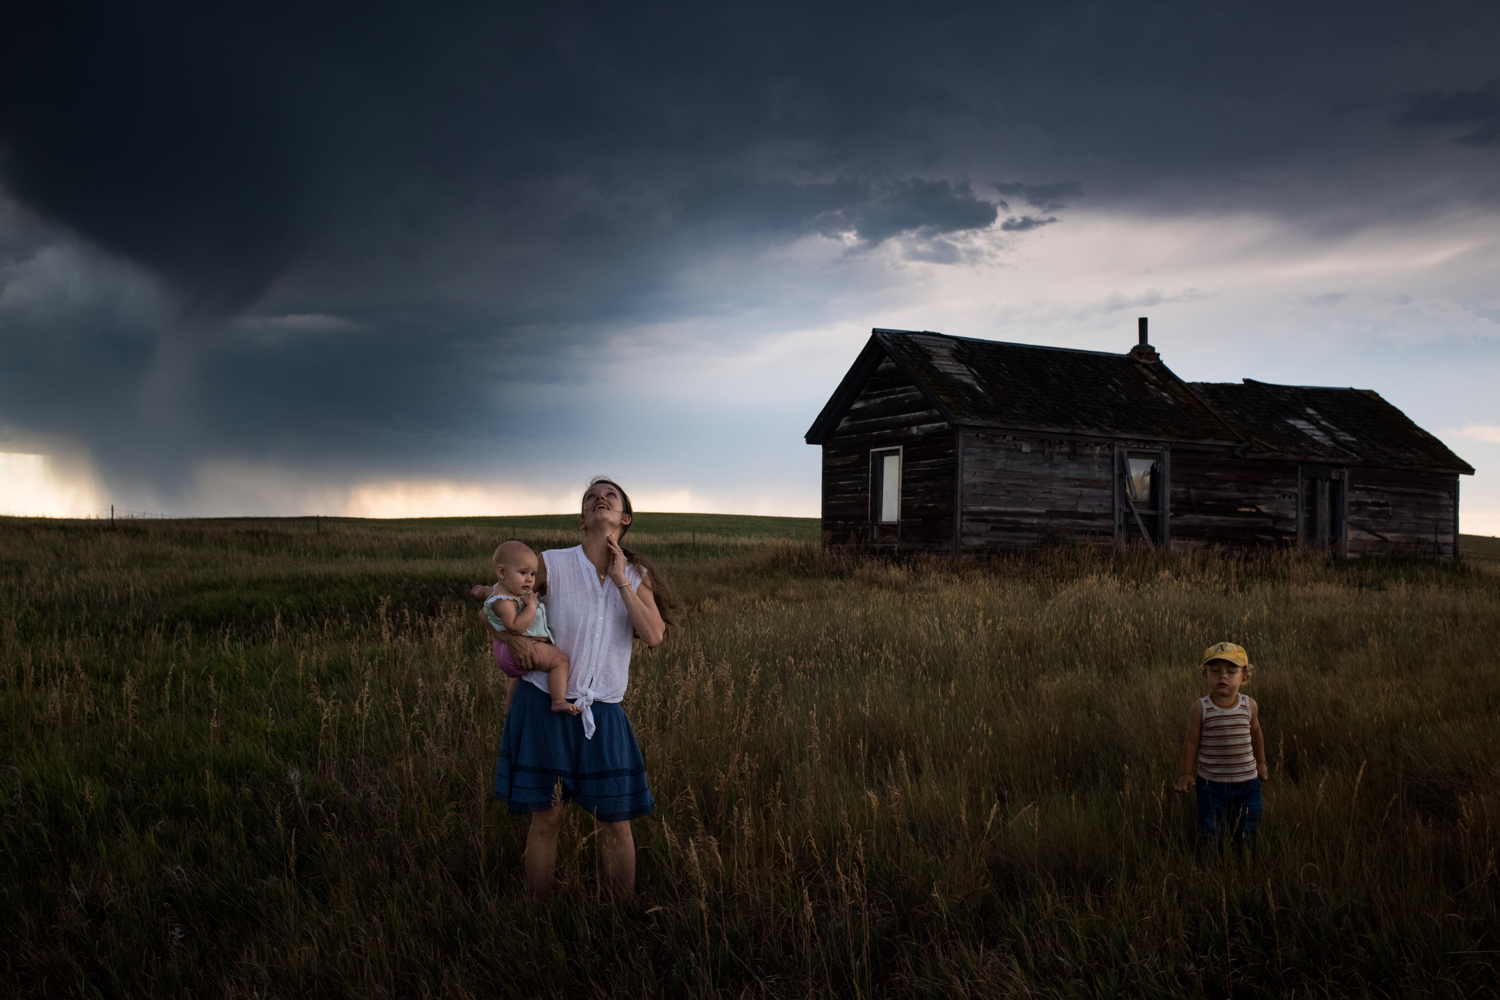 """45�33'14.2""""N 102�30'36.1""""W. 114 miles from the nearest McDonald's.Eliza Blue holds her daughter Emily as her son Max closes his eyes and feels the coming storm winds on his face as they stand near an abandoned farmhouse on their leased land in Meadow, SD on July 31, 2017. Ranchers and farmers have spent much of the droughty summer watching clouds on the horizon, hoping storms would hit, but most pass by without rain."""